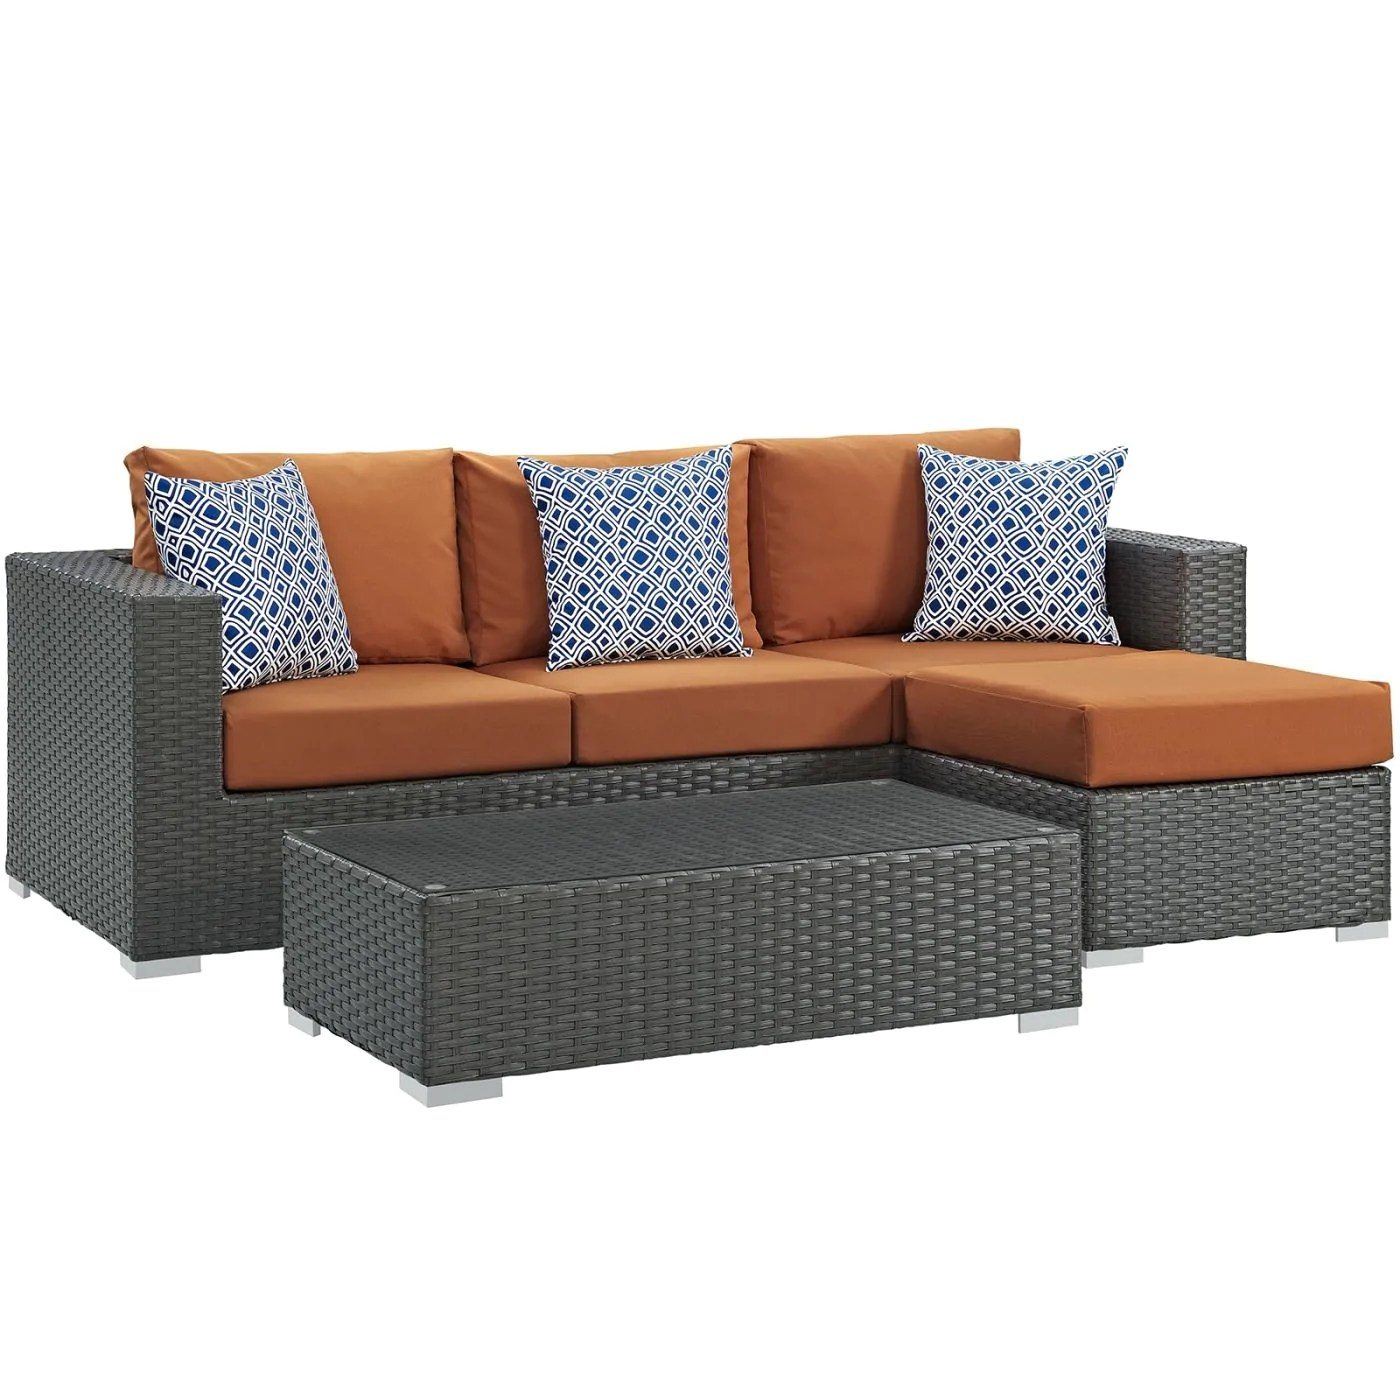 Rattan 3 Piece Sofa Modway Outdoor Patio Sets On Sale Eei 2384 Chc Tus Set Sojourn 3 Piece Outdoor Patio Rattan Sunbrella Sectional Set Only Only 1 388 75 At